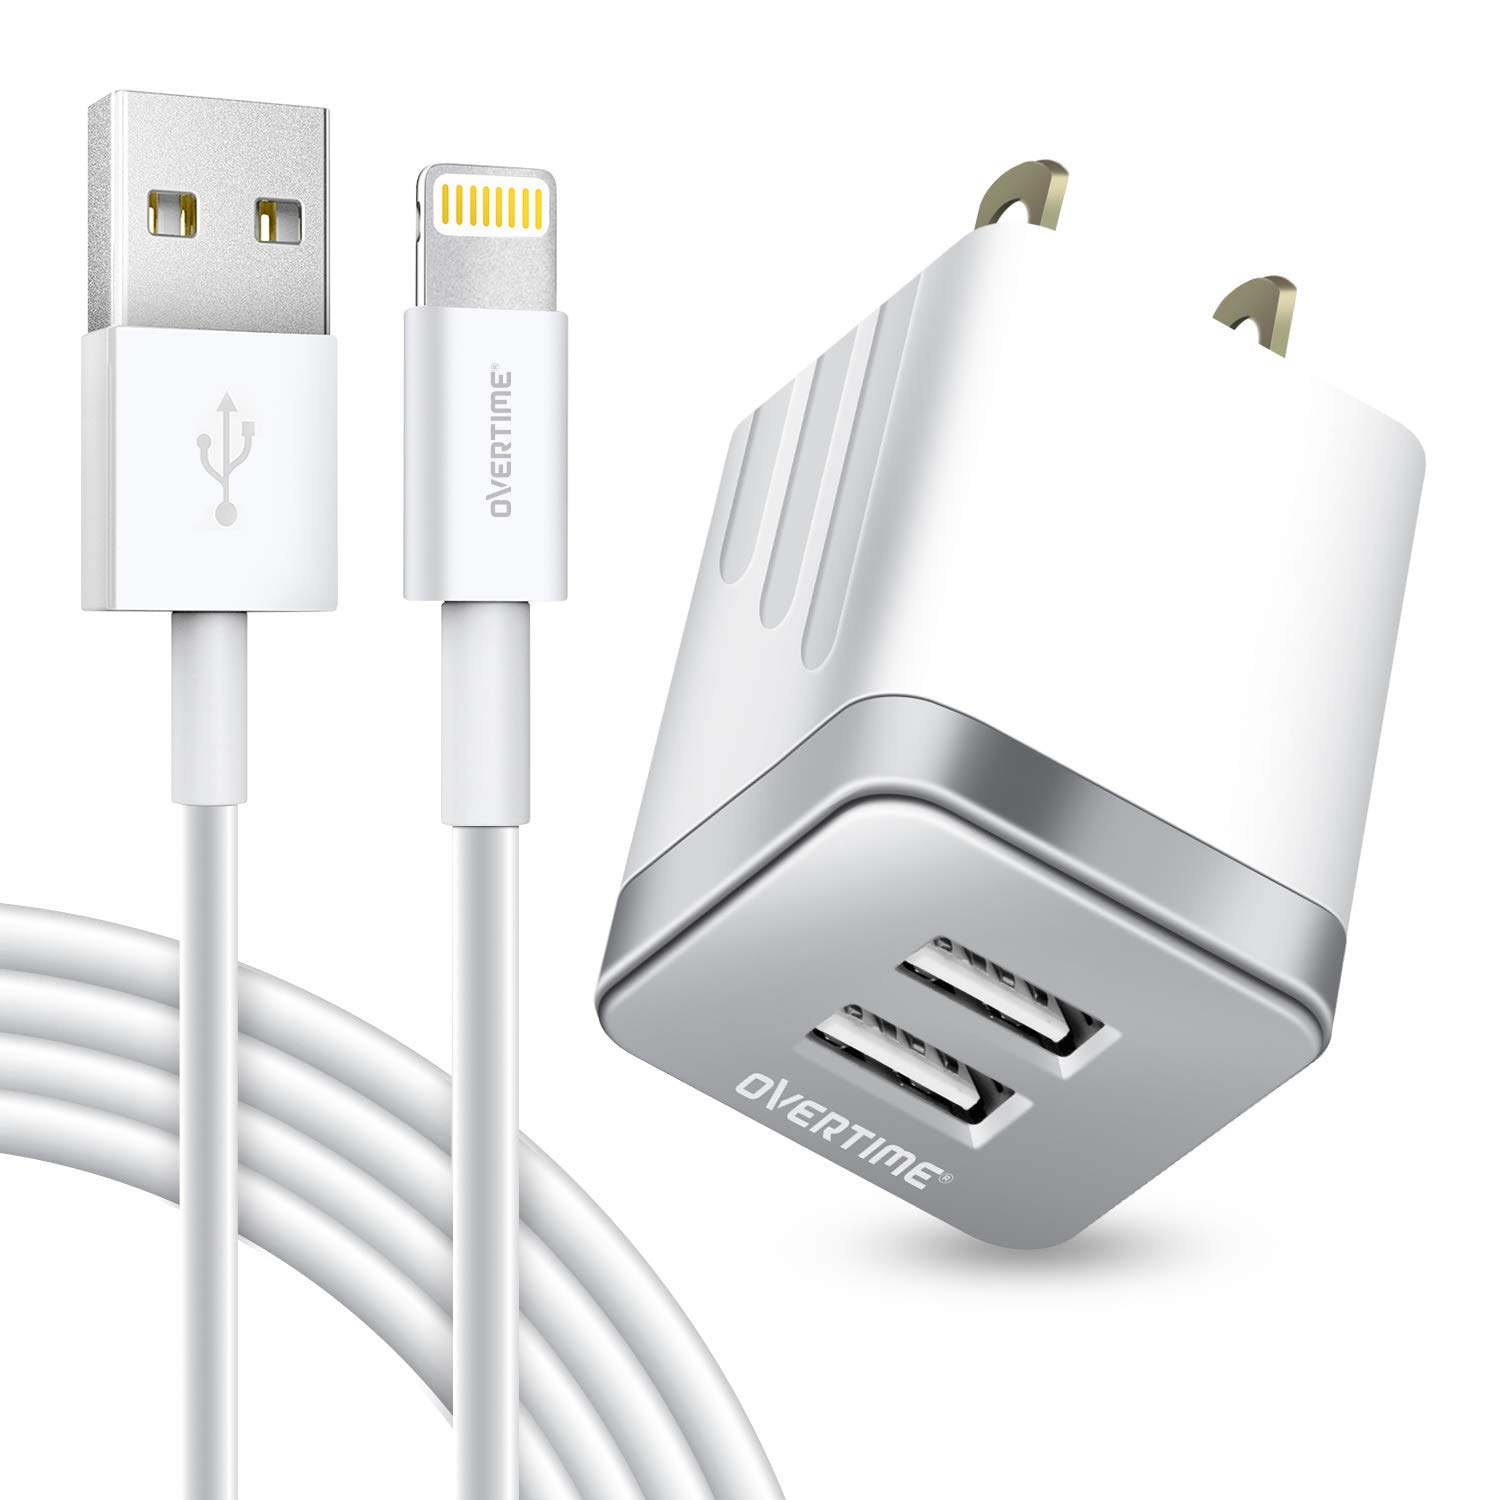 iPhone Charger and 6ft Cable, Overtime Apple MFi Certified Lightning Cable with Dual USB Wall Charger 2.4Amp Adapter for iPhone 11 Pro Max XS XR X 8 7 6S 6 Plus SE 5S 5C 5 AirPods iPad - Silver